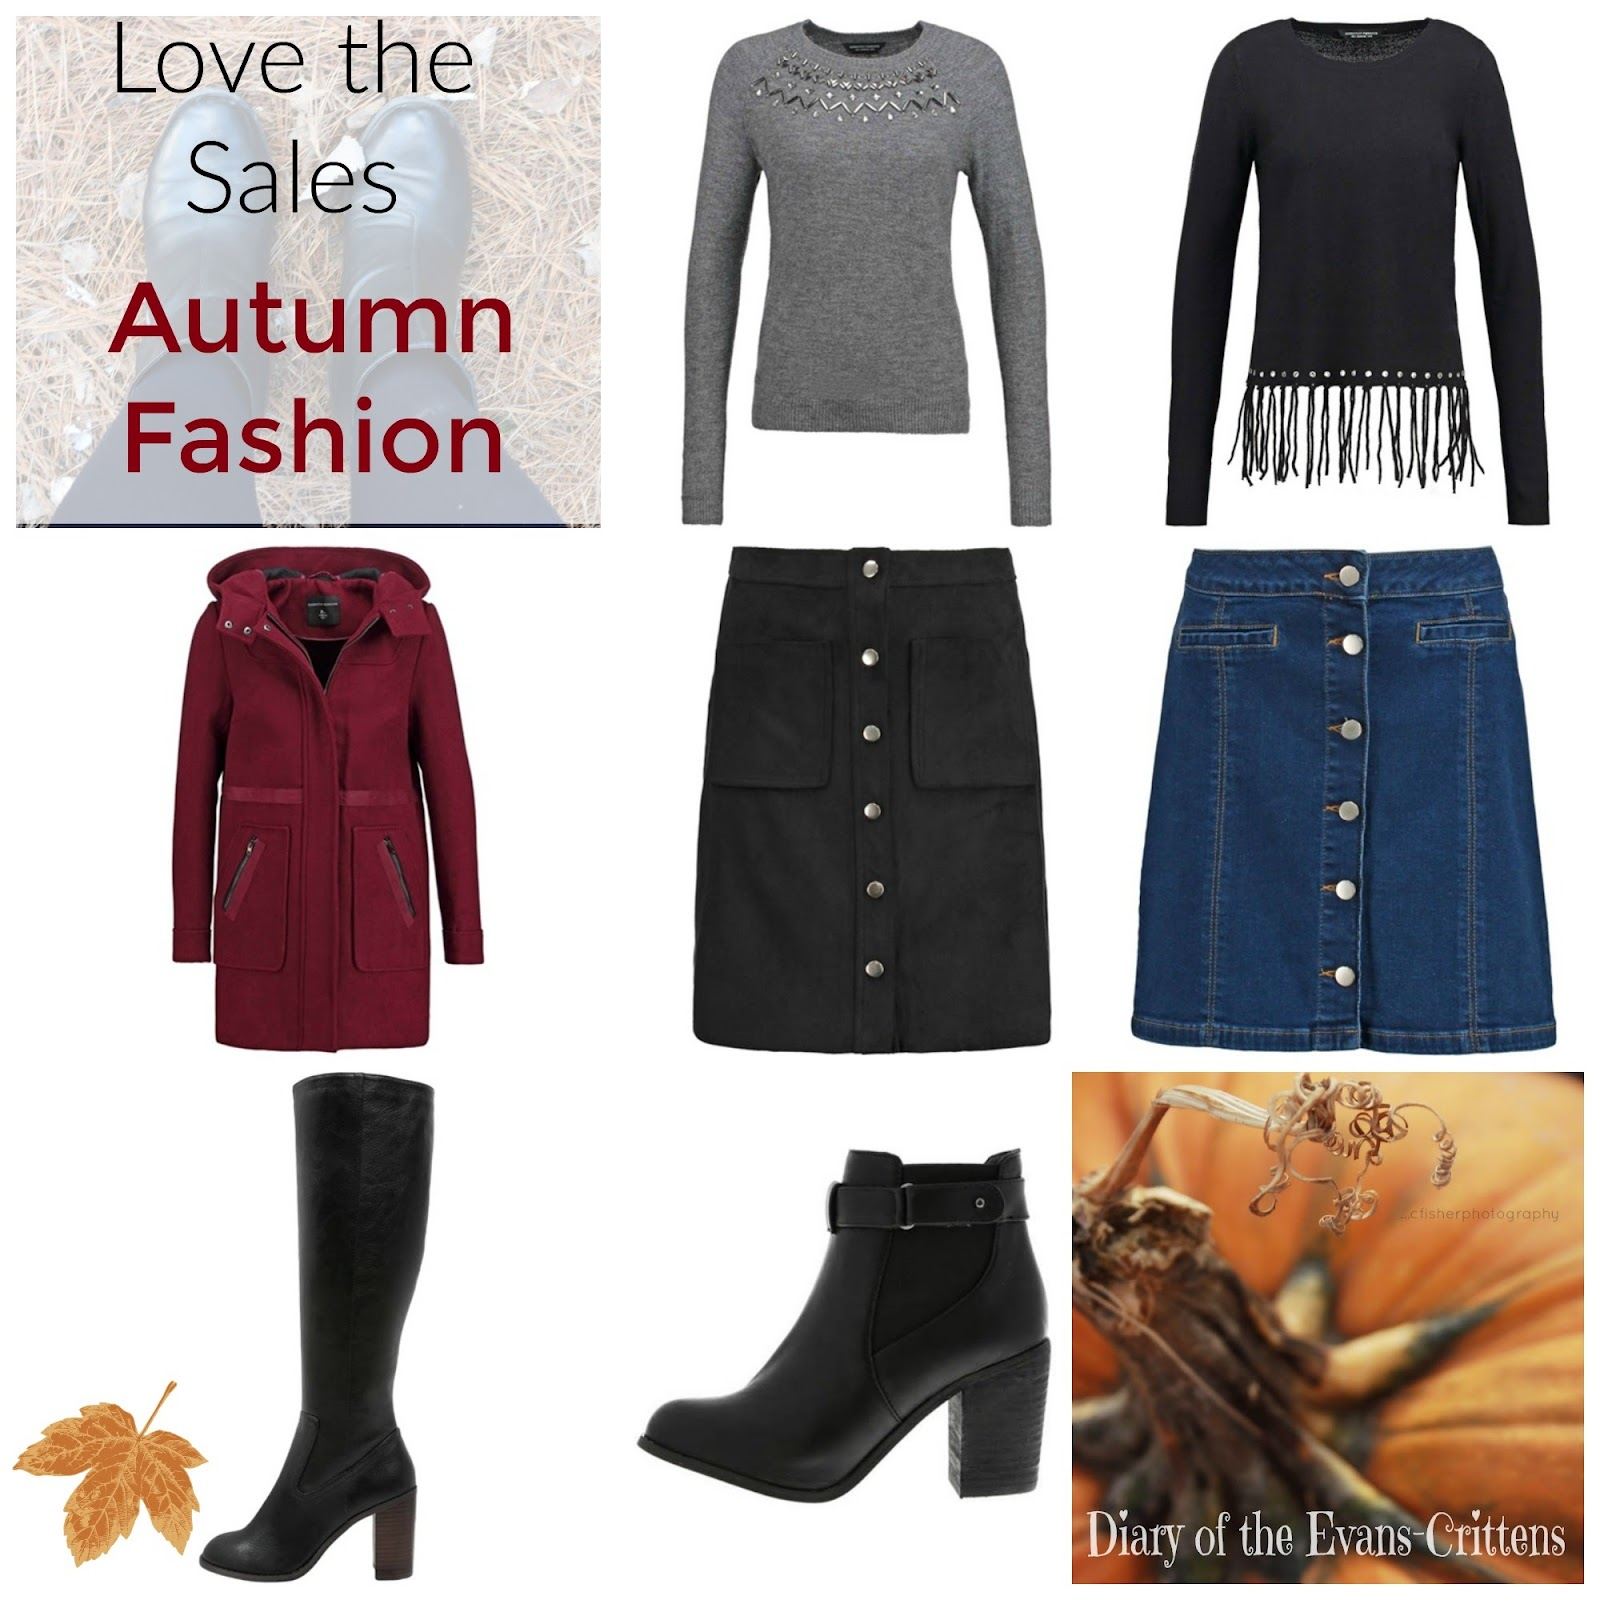 Love the sales, Autumn Fashion, Dorothy Perkins, Dorothy Perkins Sale, style